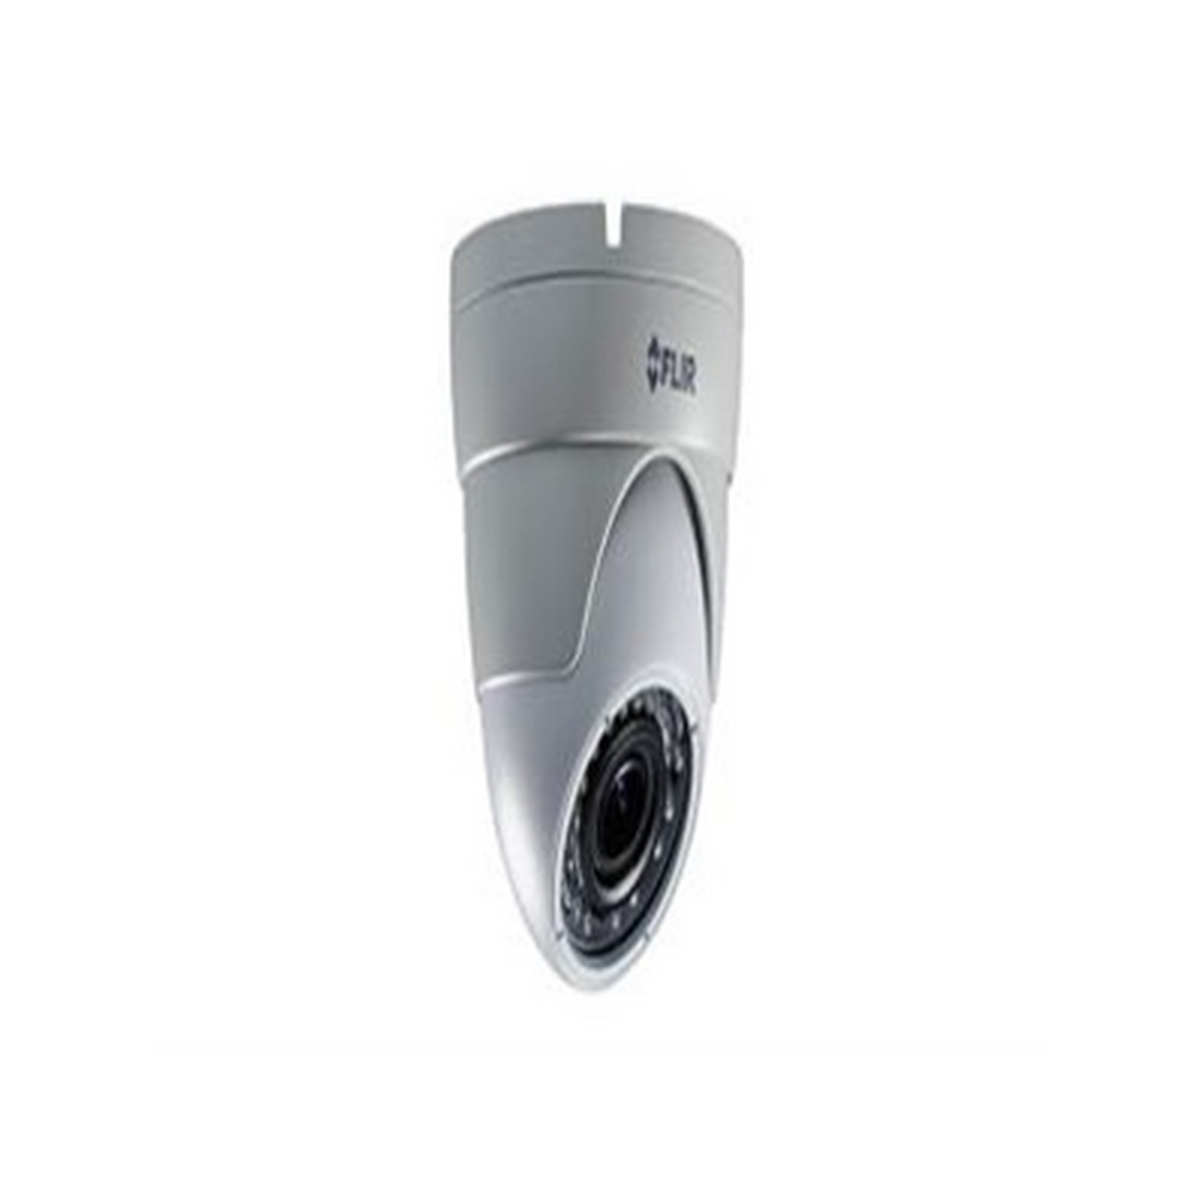 2.1 MP HD Motorized Varifocal WDR Dome MPX camera, 2.8-12MM Lens, 12vdc/24vac